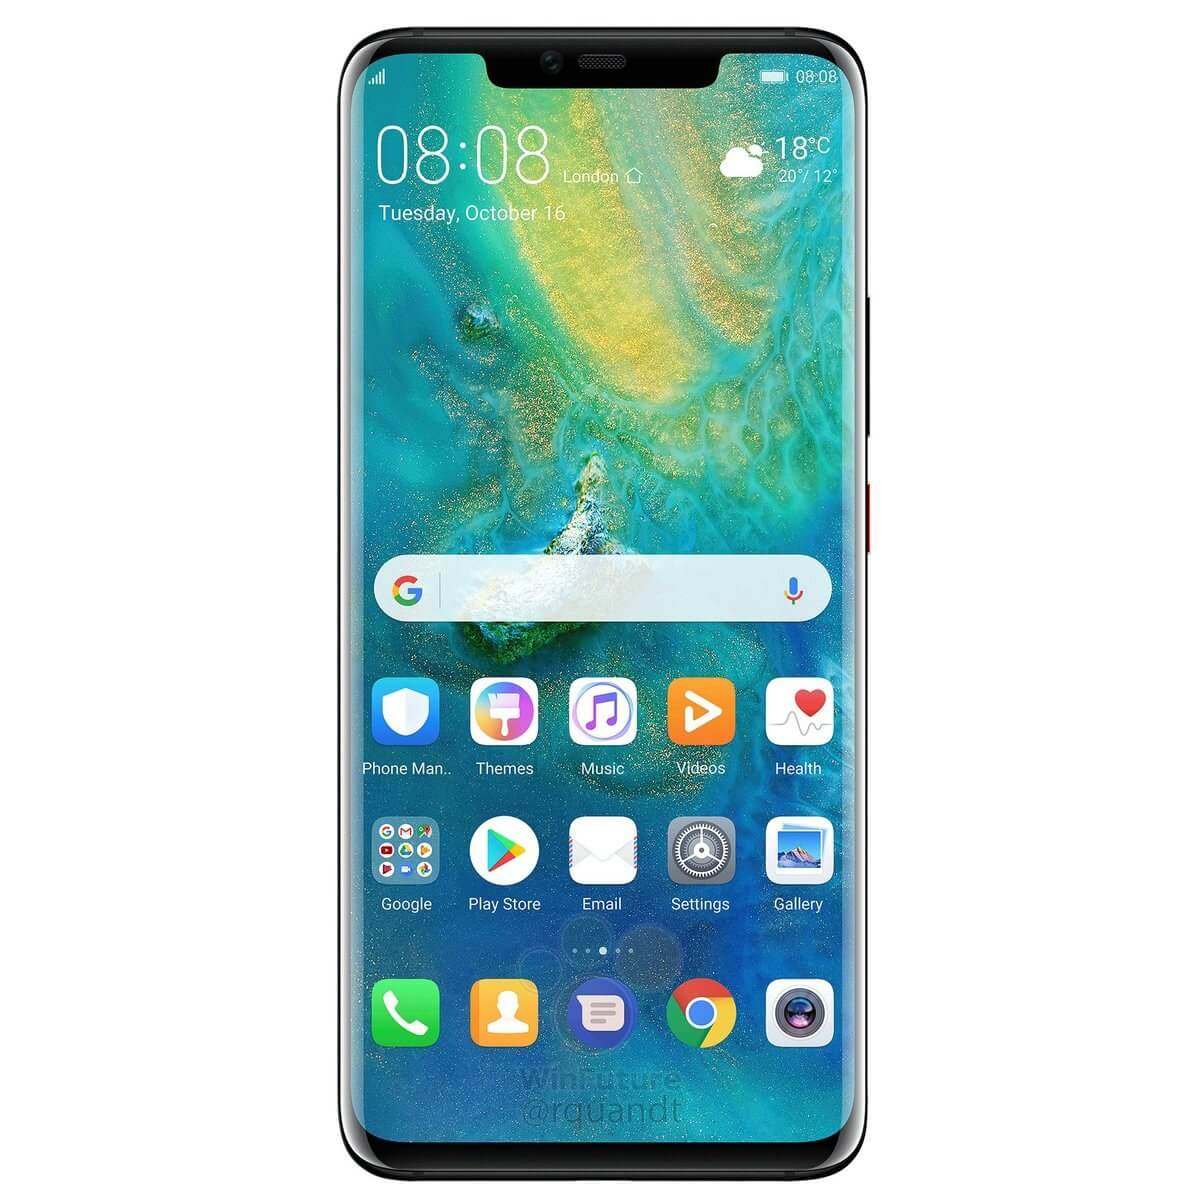 5. Huawei Mate 20 Pro – Best Smartphone of 2019 in Terms of Features